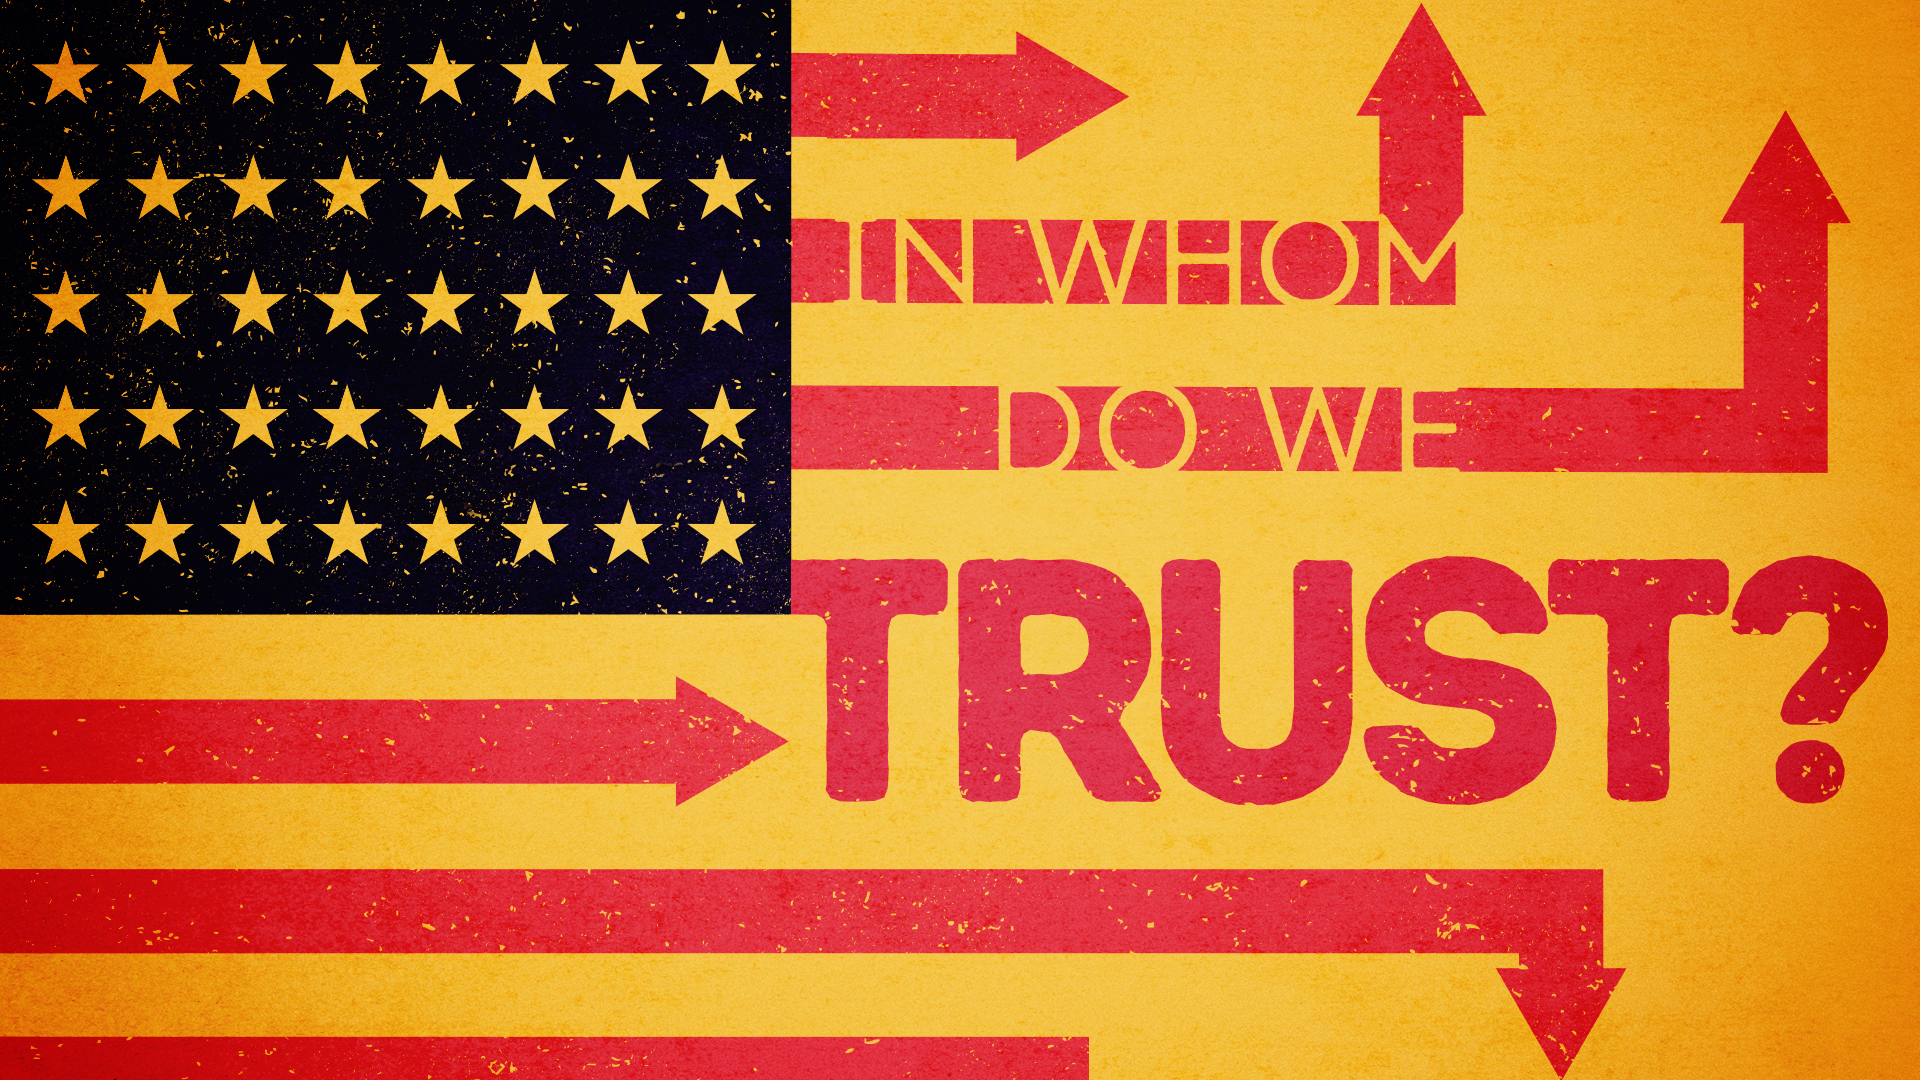 In Whom Do We Trust?